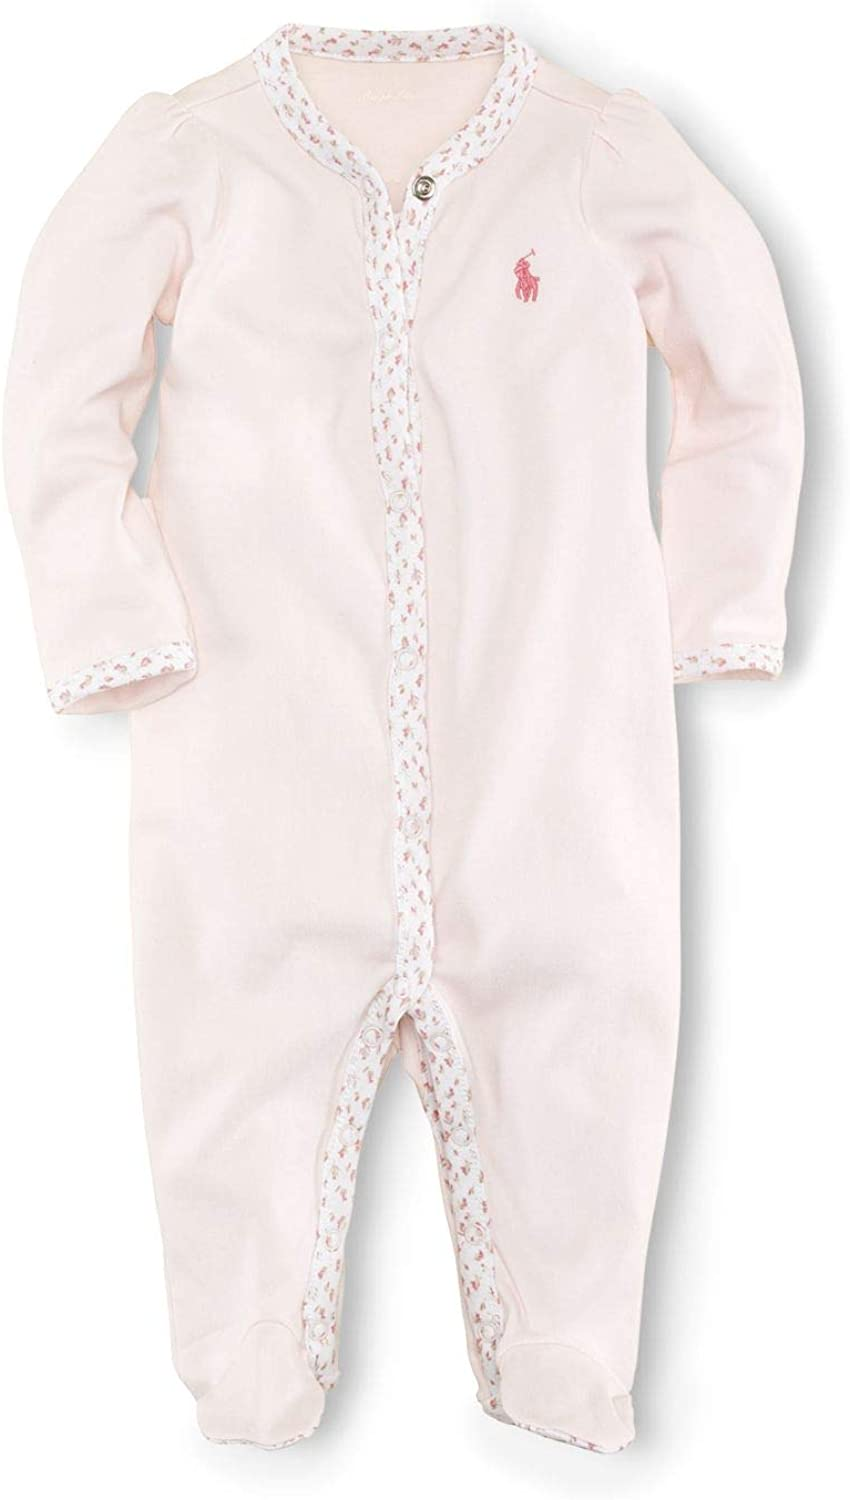 Polo Ralph Lauren Kids Baby Girl's BSR Interlock Solid One-Piece Coveralls (Infant) Delicate Pink 9 mos